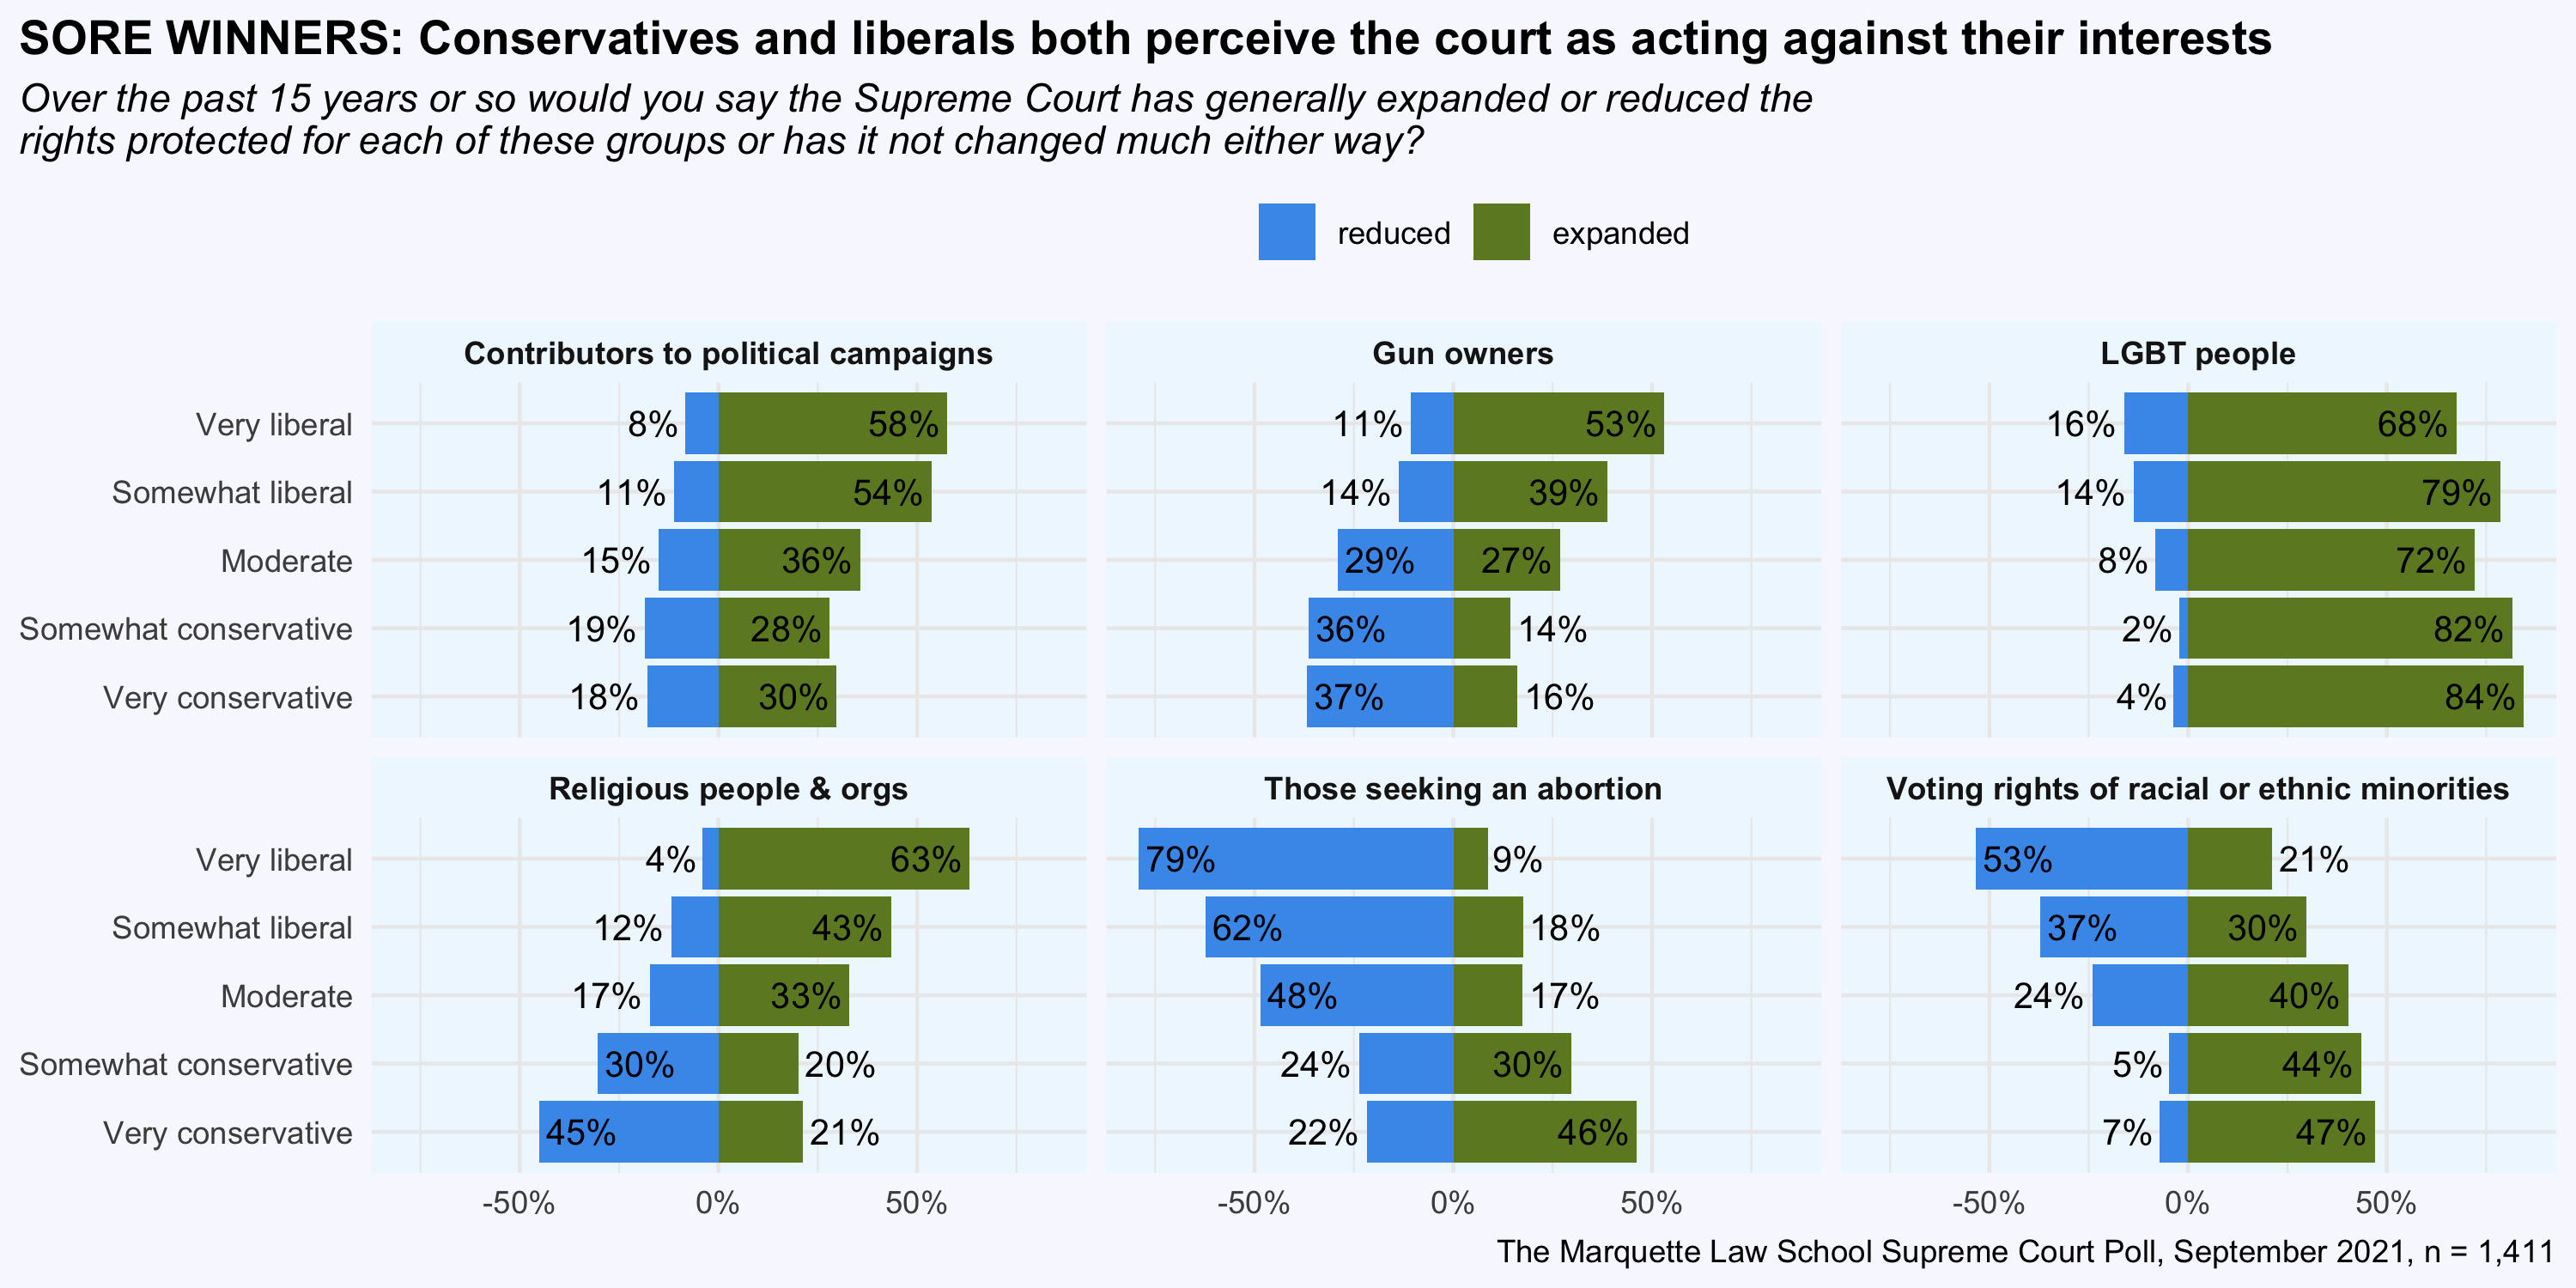 Graph showing perceptions of the Court by ideology